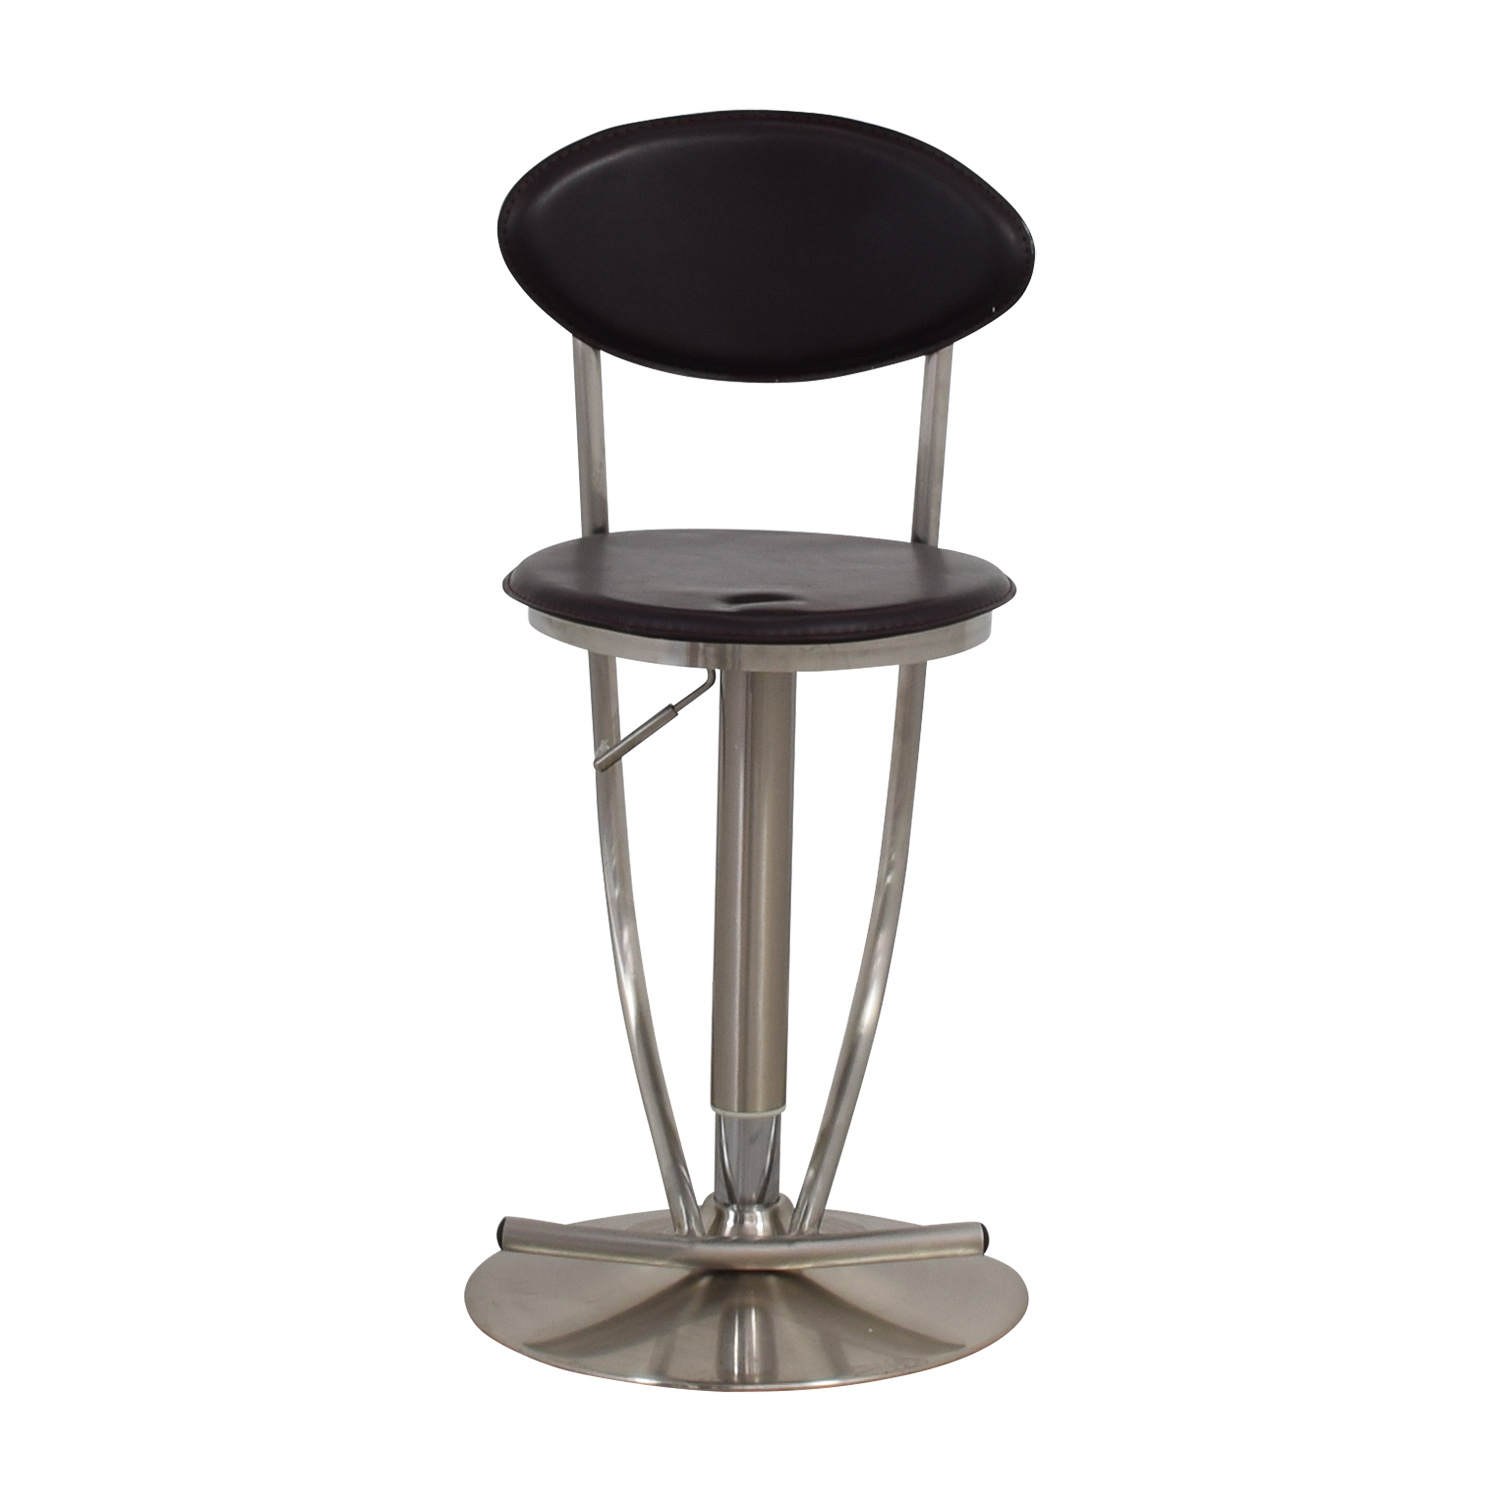 Circular Brown & Metal Stool used